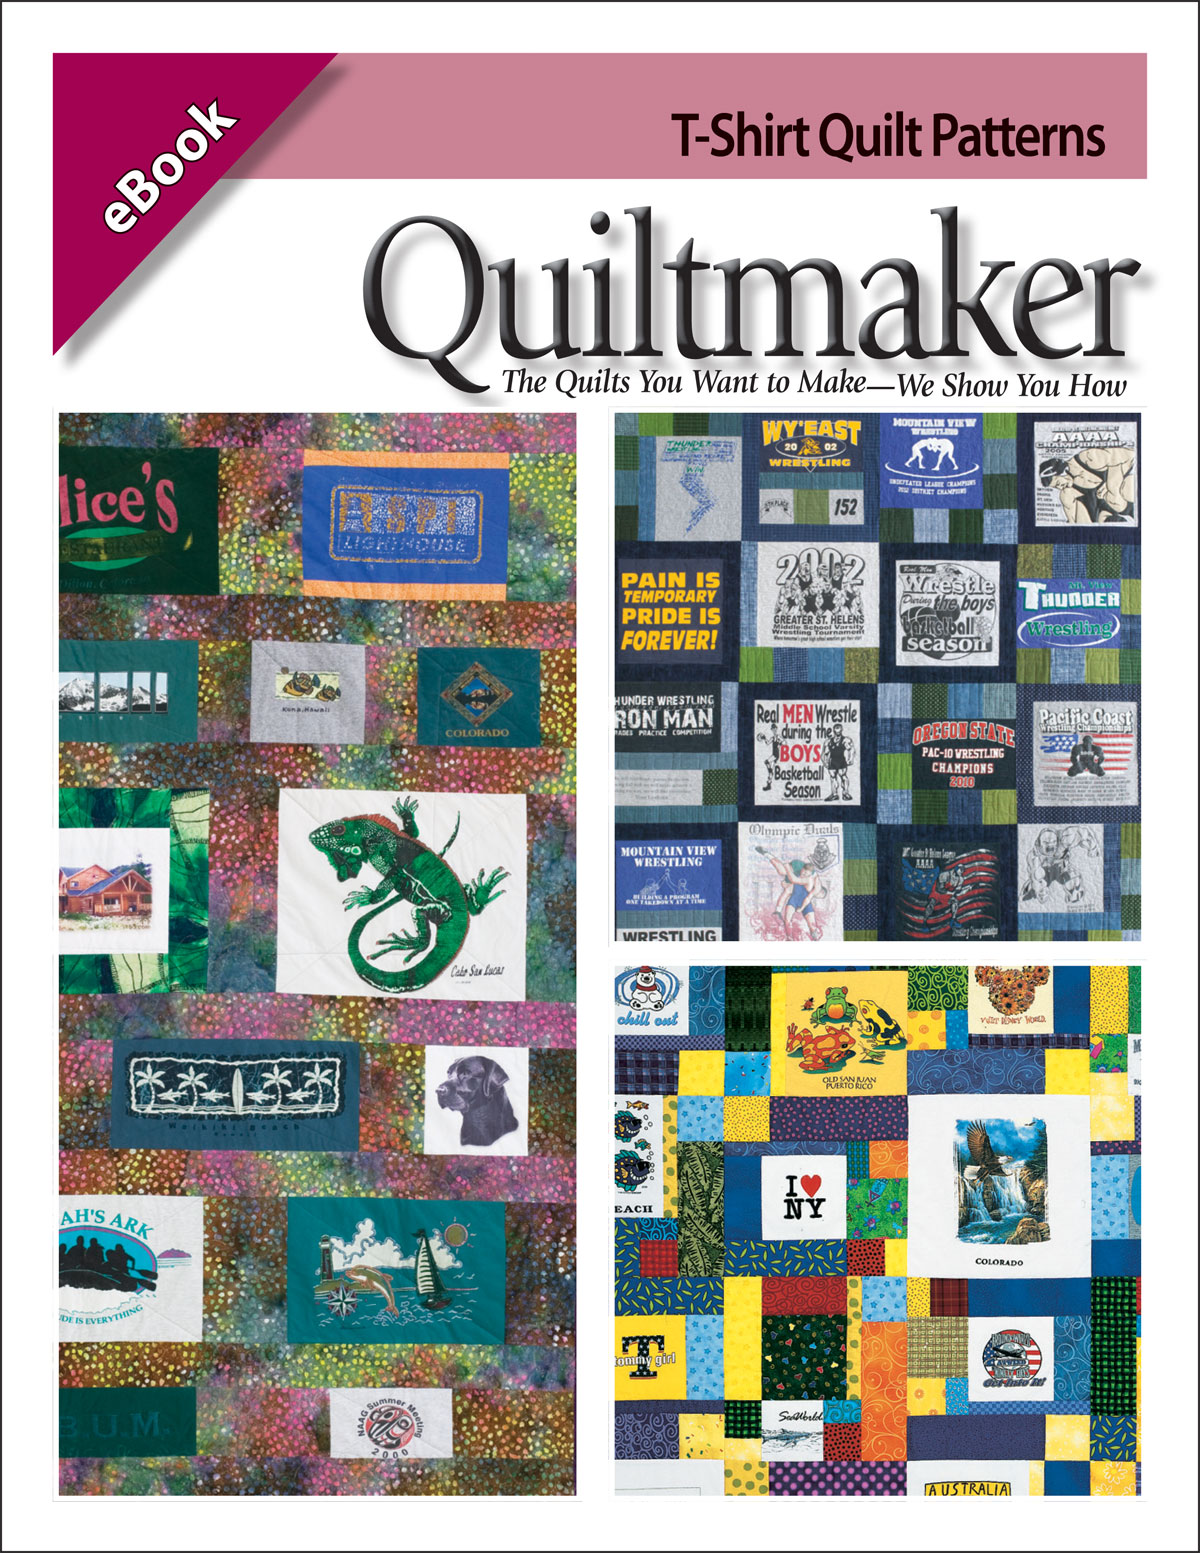 Free T-Shirt Quilt Patterns - How to Make Your Own T-Shirt Quilts ... : tee shirt quilt directions - Adamdwight.com